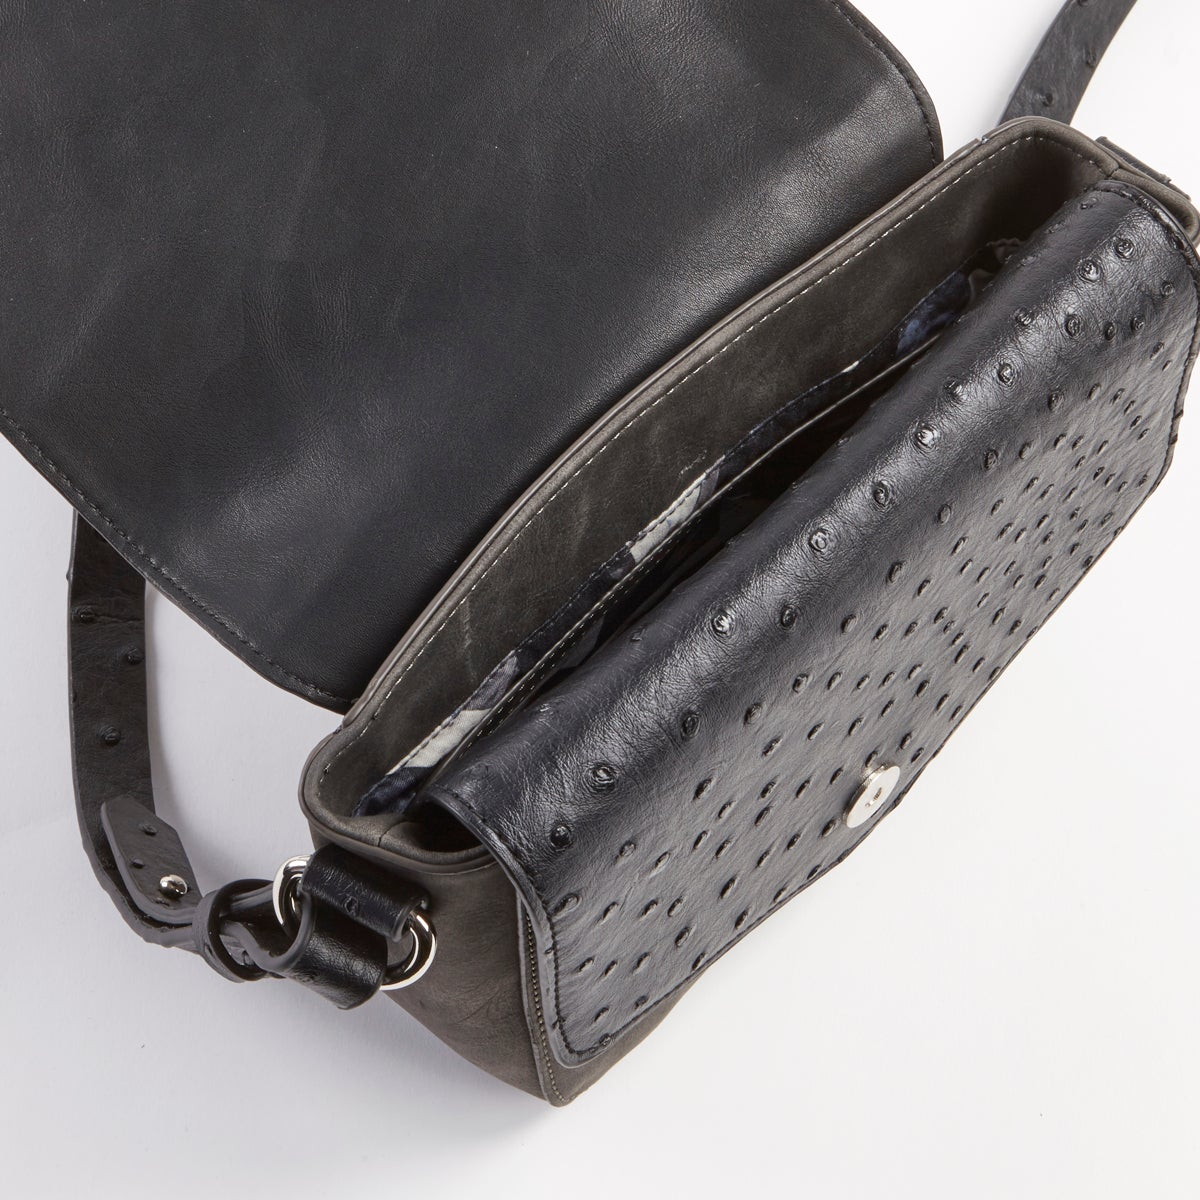 Lds Cosmopolitan black cross body bag